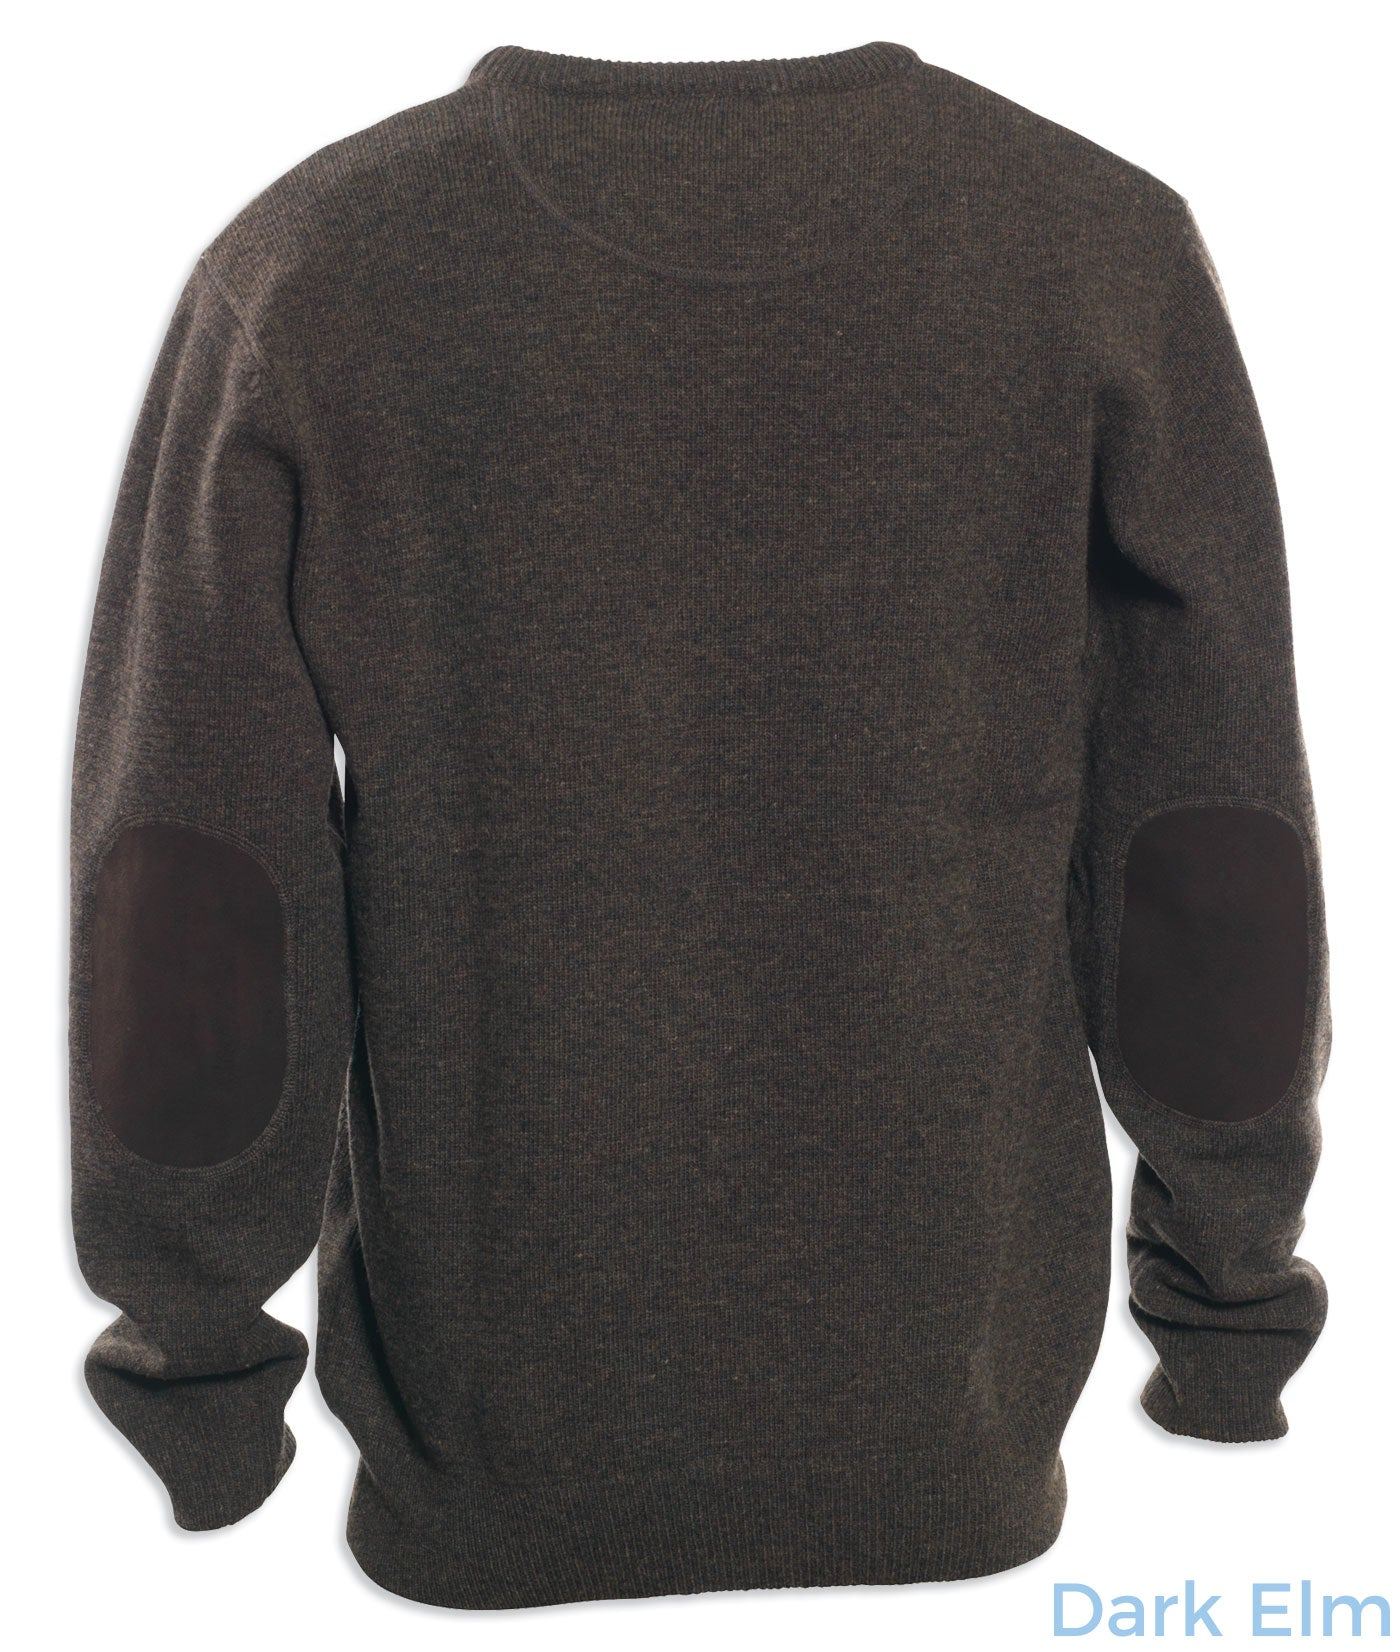 dark elm back Deerhunter Lambswool Crew Neck Pullover